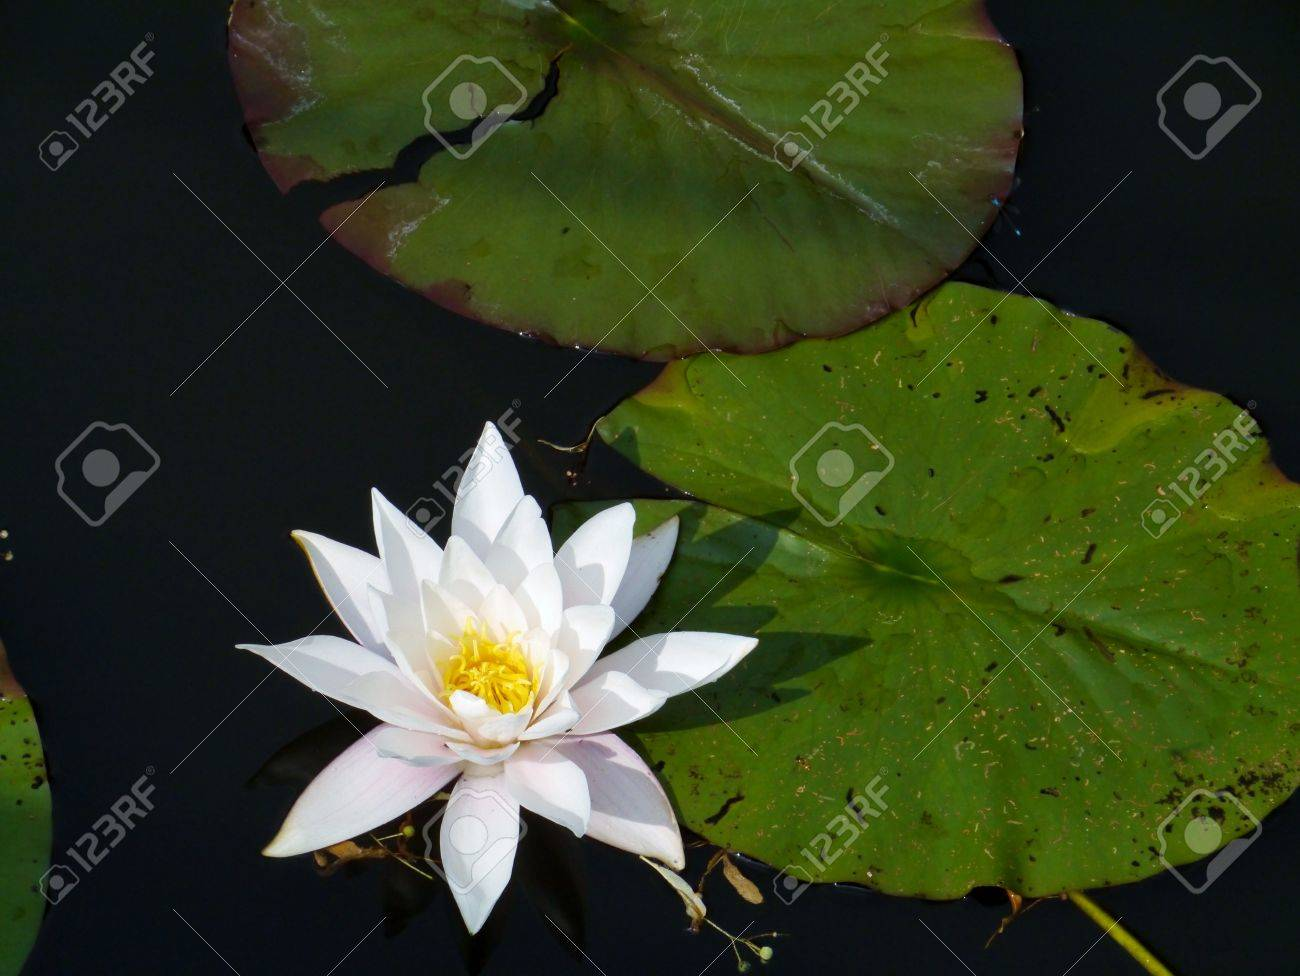 White Flowering Water Lily Plant Stock Photo Picture And Royalty